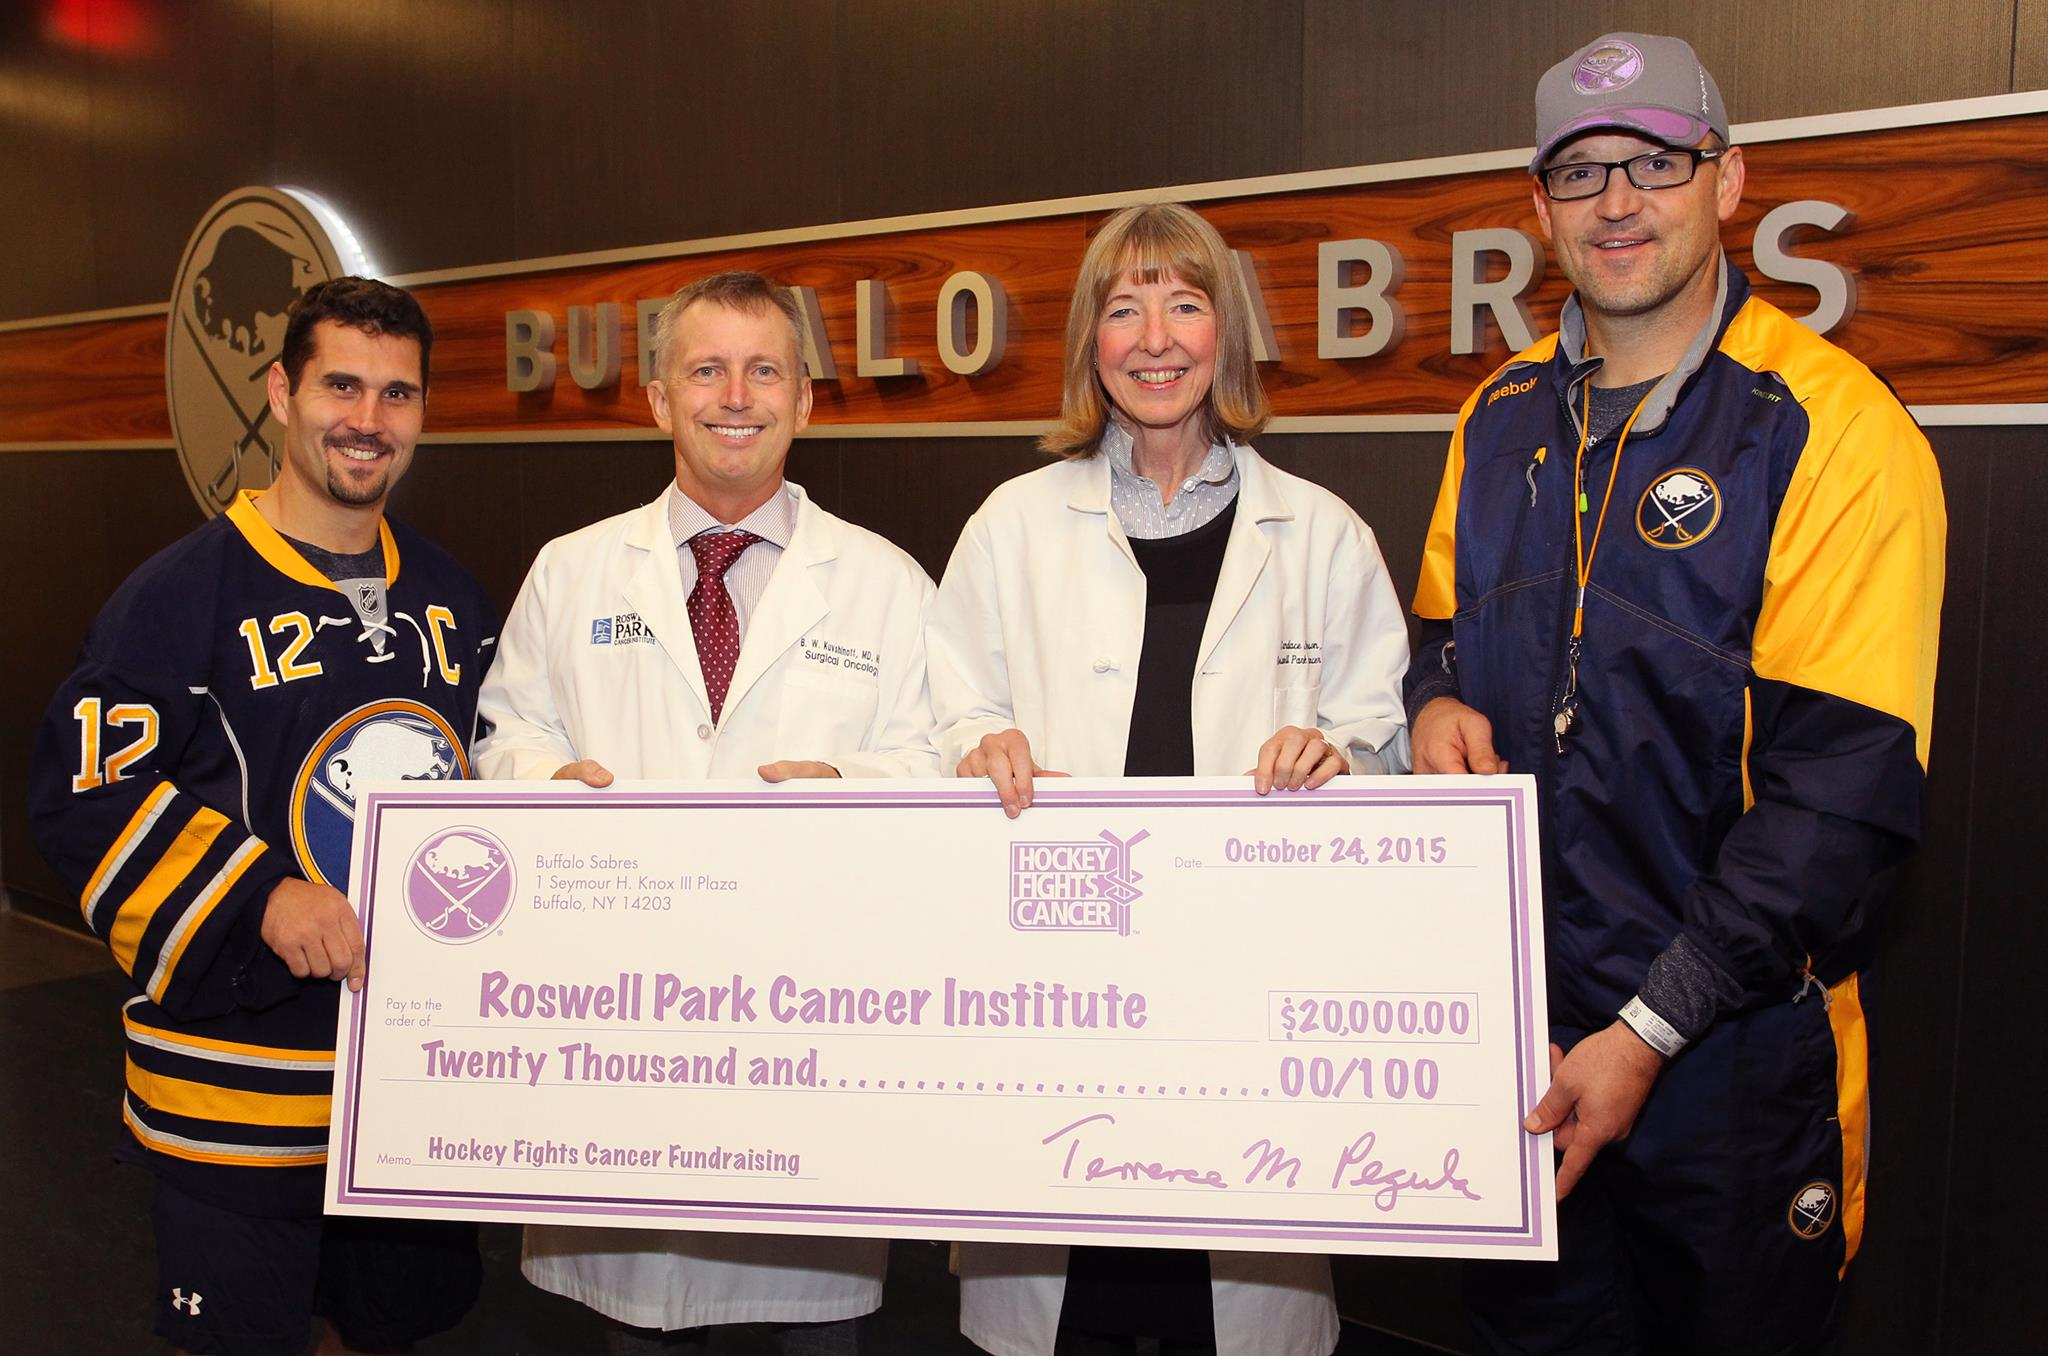 Brian Gionta and Dan Bylsma present the Hockey Fights Cancer donation to Drs. Kuvshinoff and Johnson